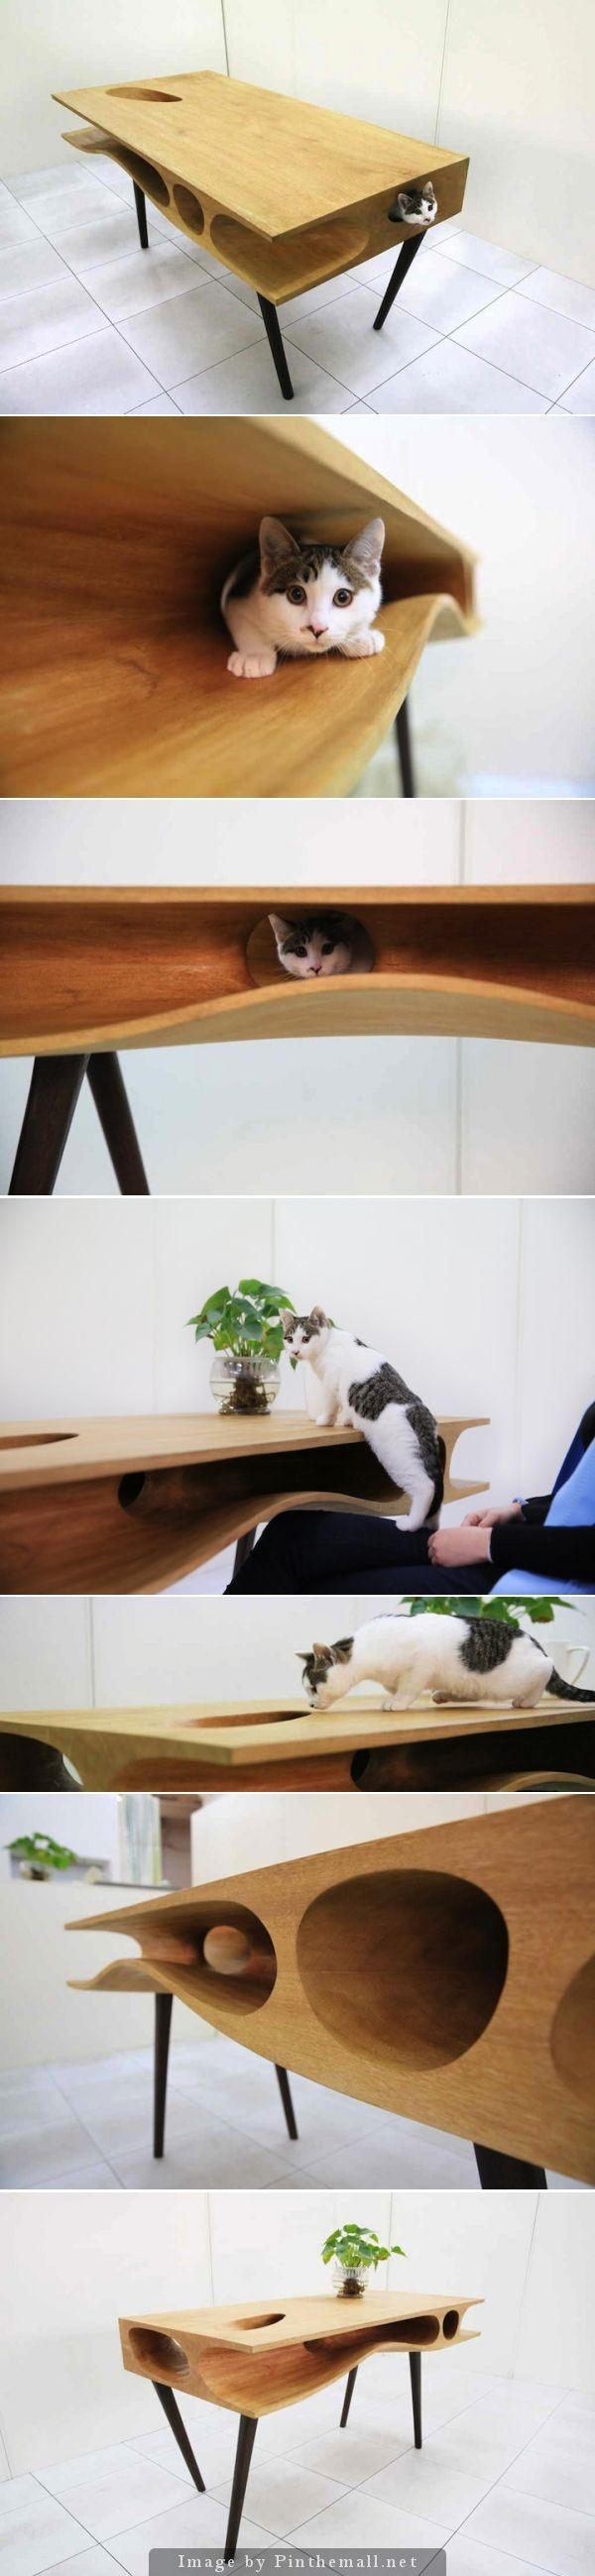 CATable by Ruan Hao, LYCS http://www.mymodernmet.com/profiles/blogs/shared-table-where-people-can-work-and-cats-can-wander